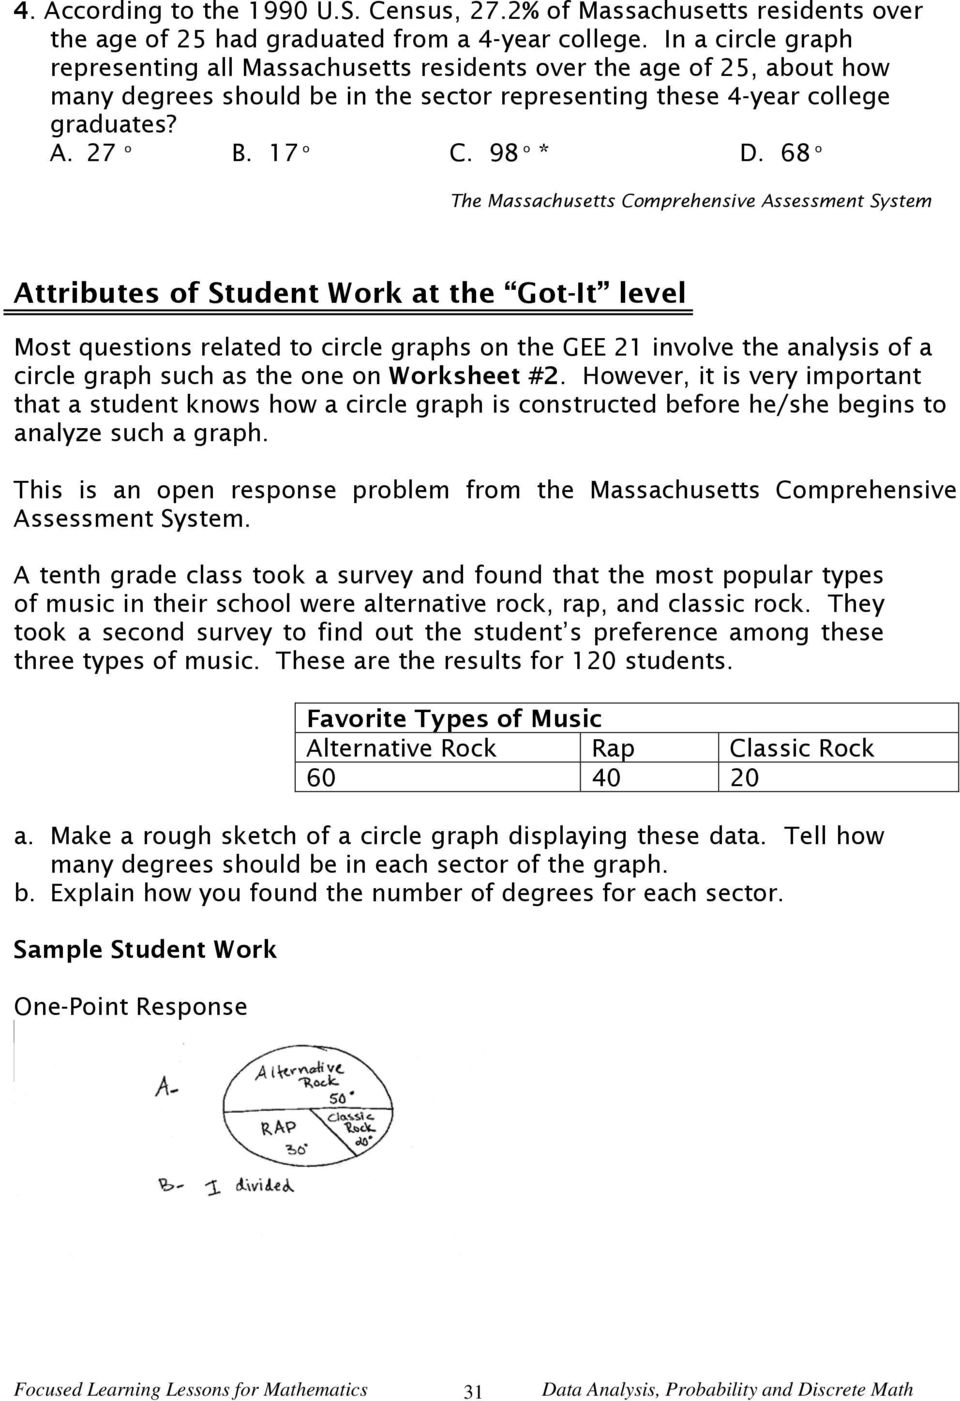 worksheet Circle Graph Worksheet lesson 3 constructing circle graphs selected content standards 68 o the massachusetts comprehensive assessment system attributes of student work at got it